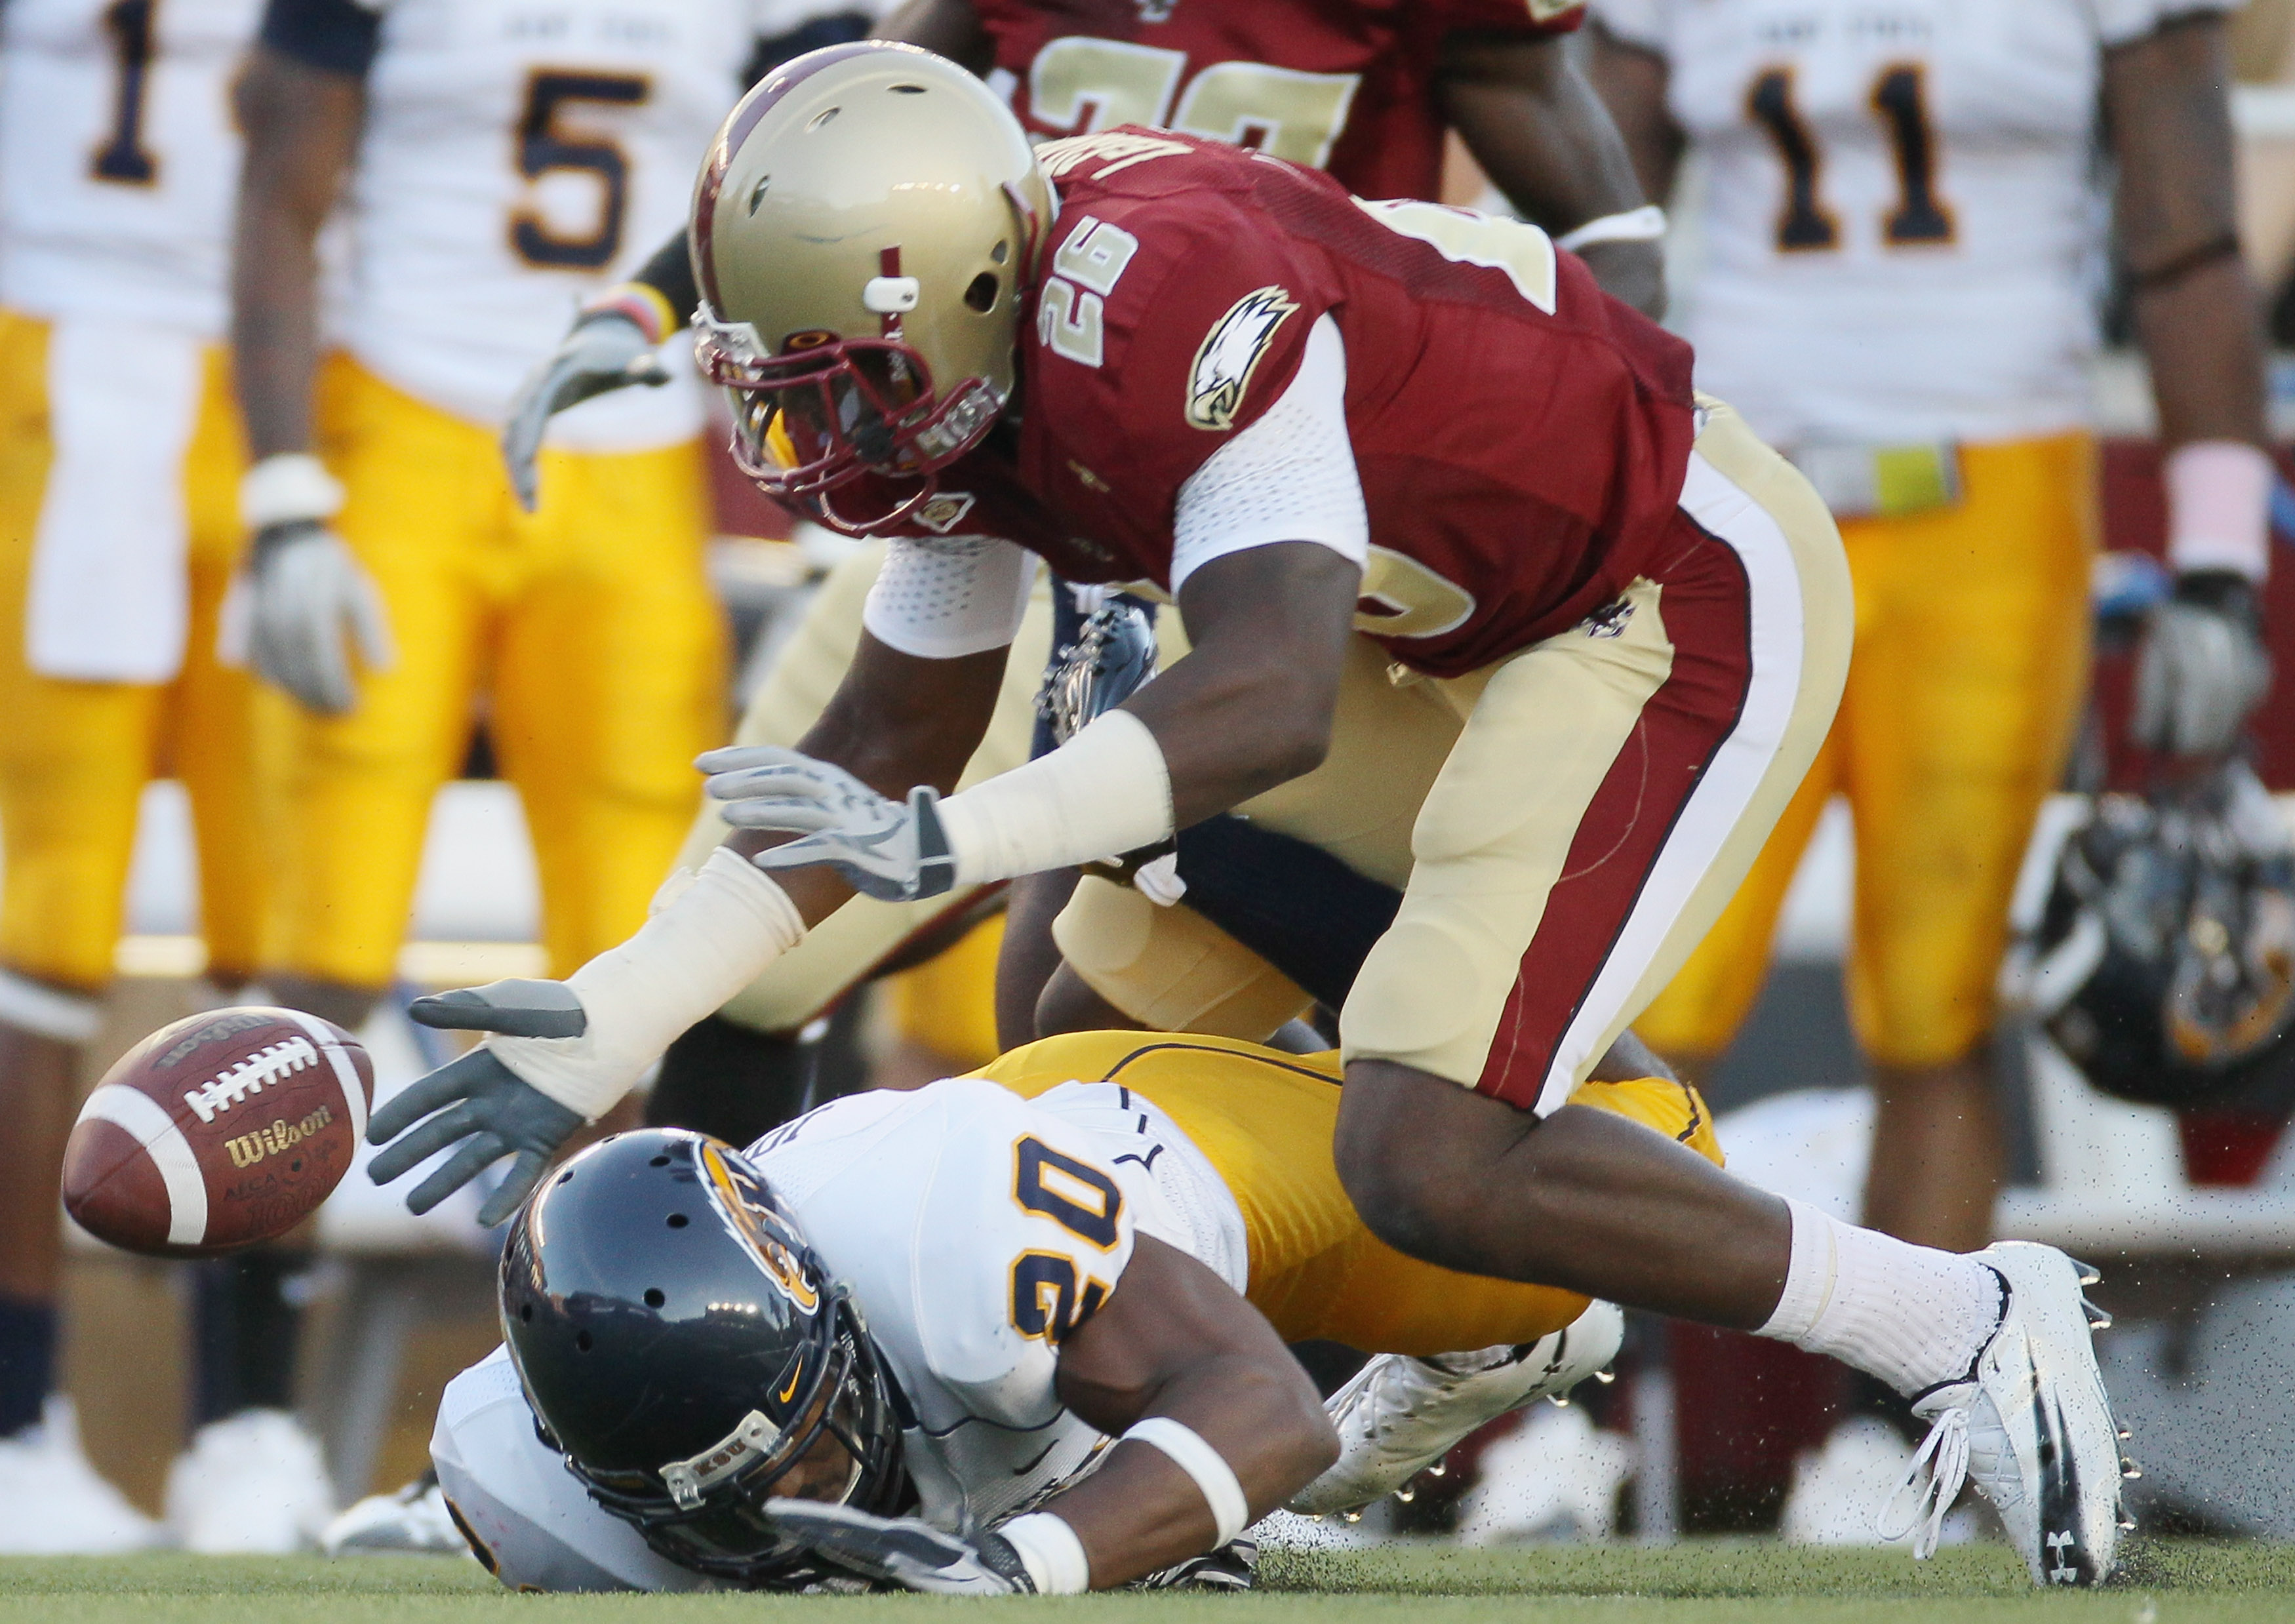 CHESTNUT HILL, MA - SEPTEMBER 11:  Dominick LeGrande #26 of the Boston College Eagles and Will Johnson #20 of the Kent State Golden Flashes chase after the fumble on September 11, 2010 at Alumni Stadium in Chestnut Hill, Massachusetts. Boston College defe